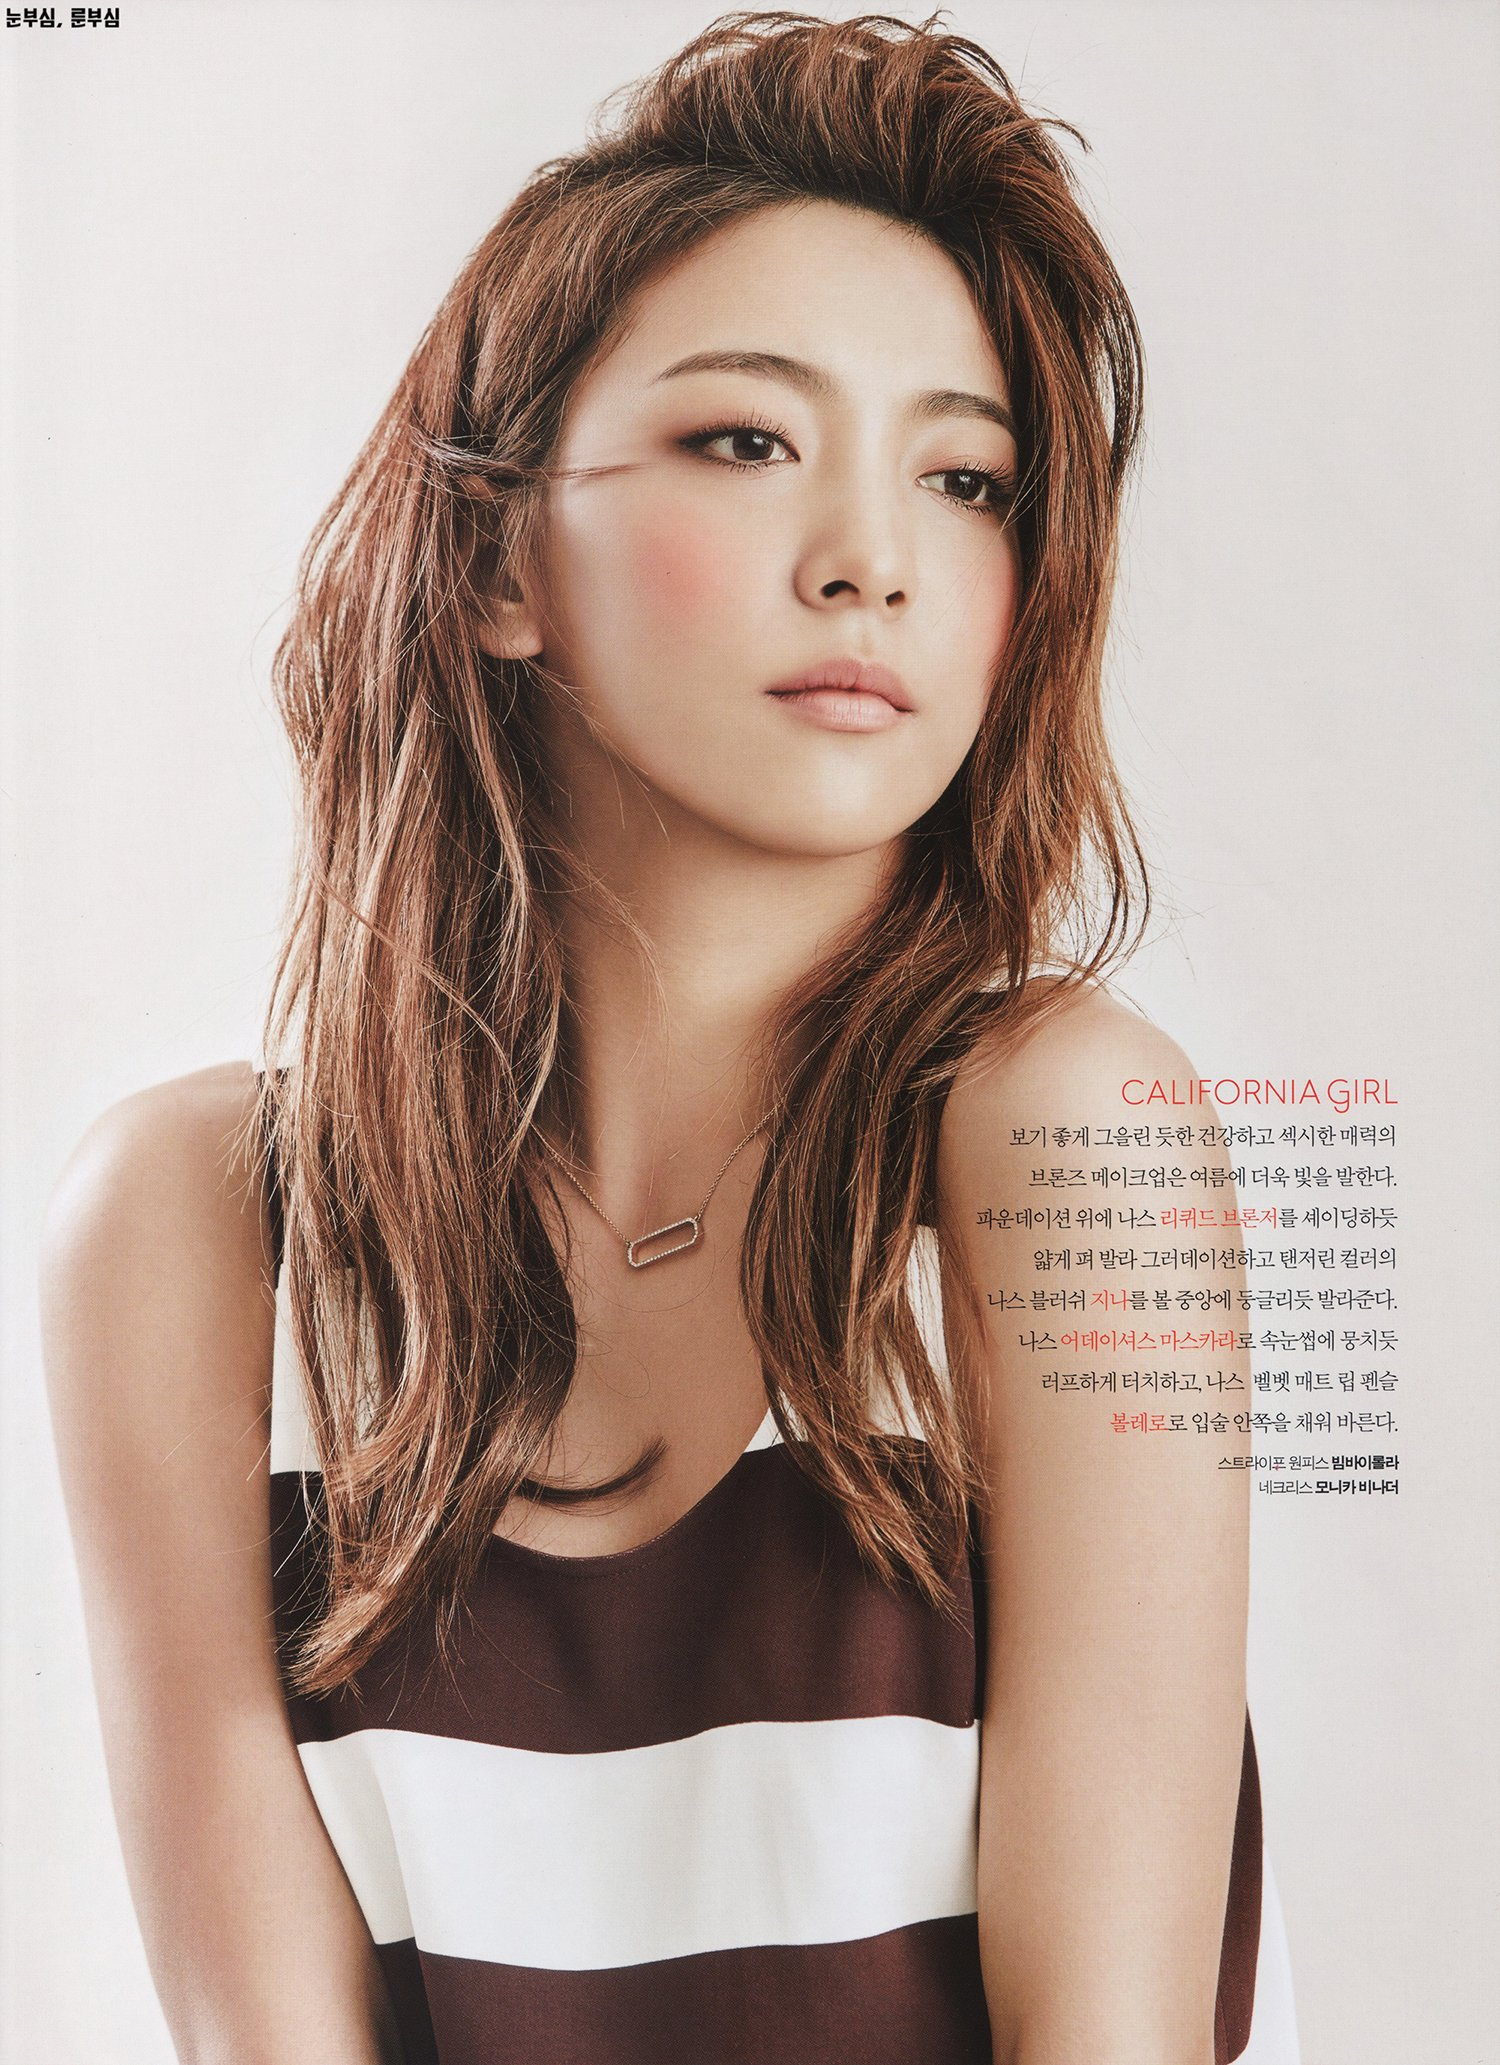 Luna Android Iphone Wallpaper 88811 Asiachan Kpop Image Board